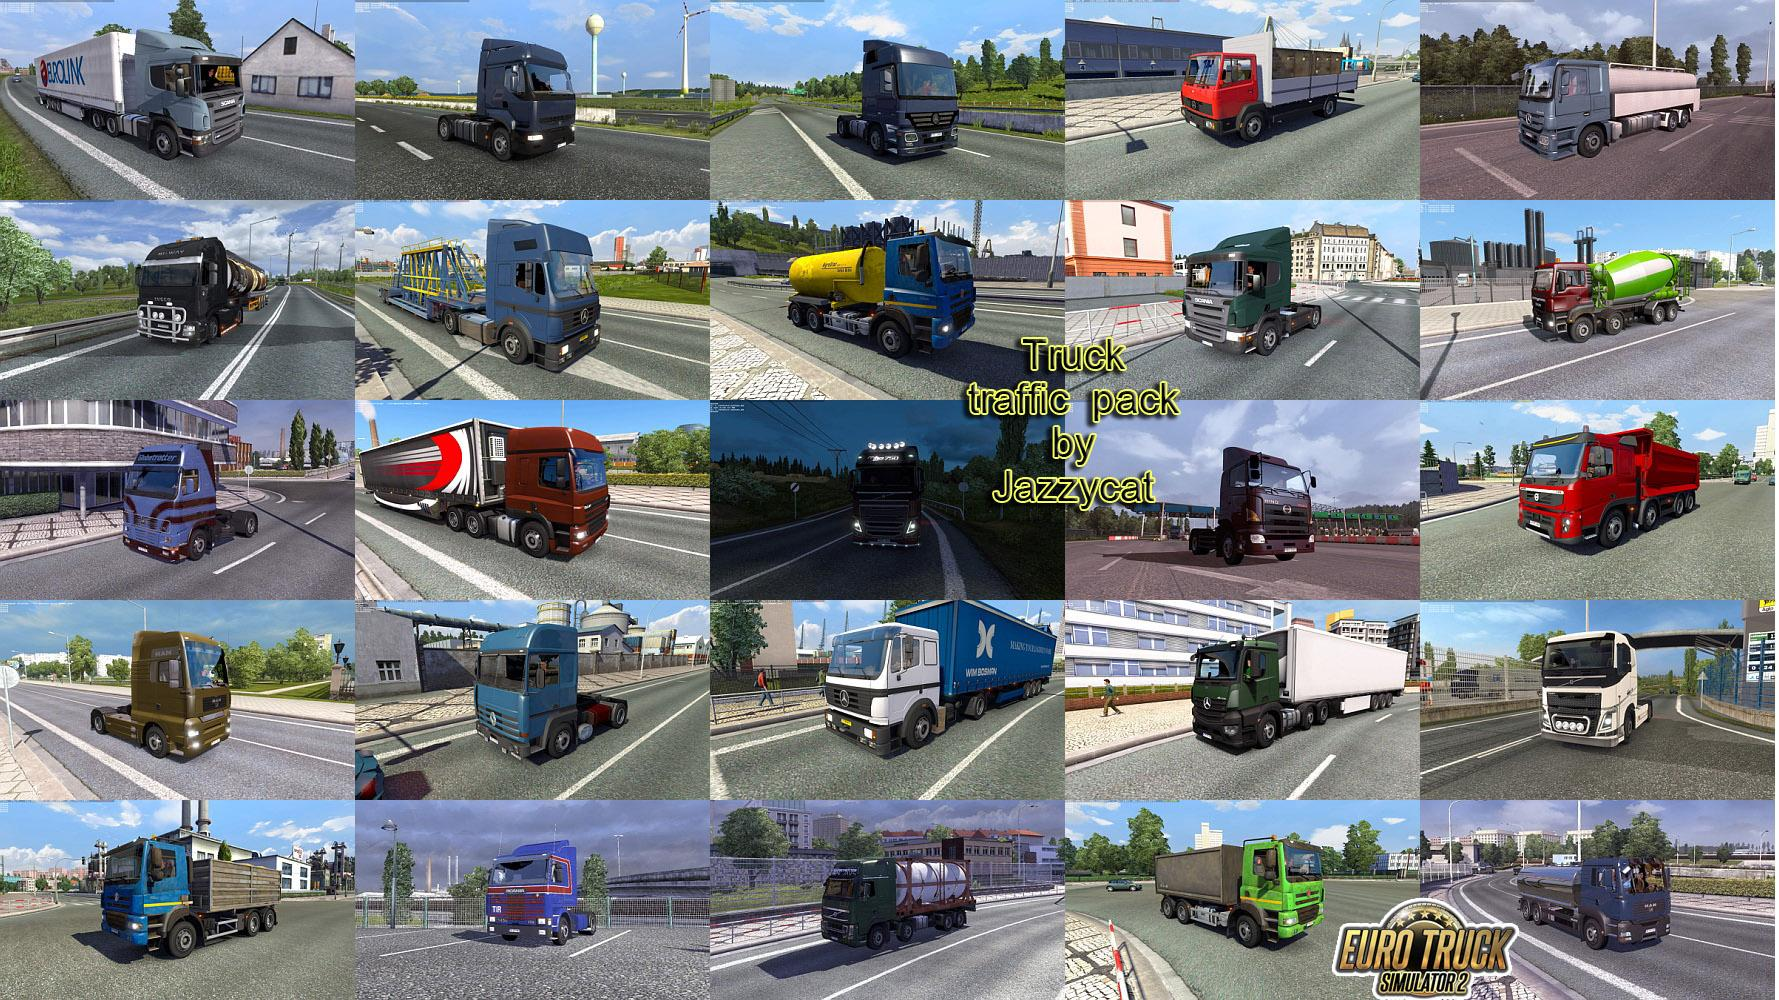 TRUCK TRAFFIC PACK MOD BY JAZZYCAT V2 7 ETS2 - Euro Truck